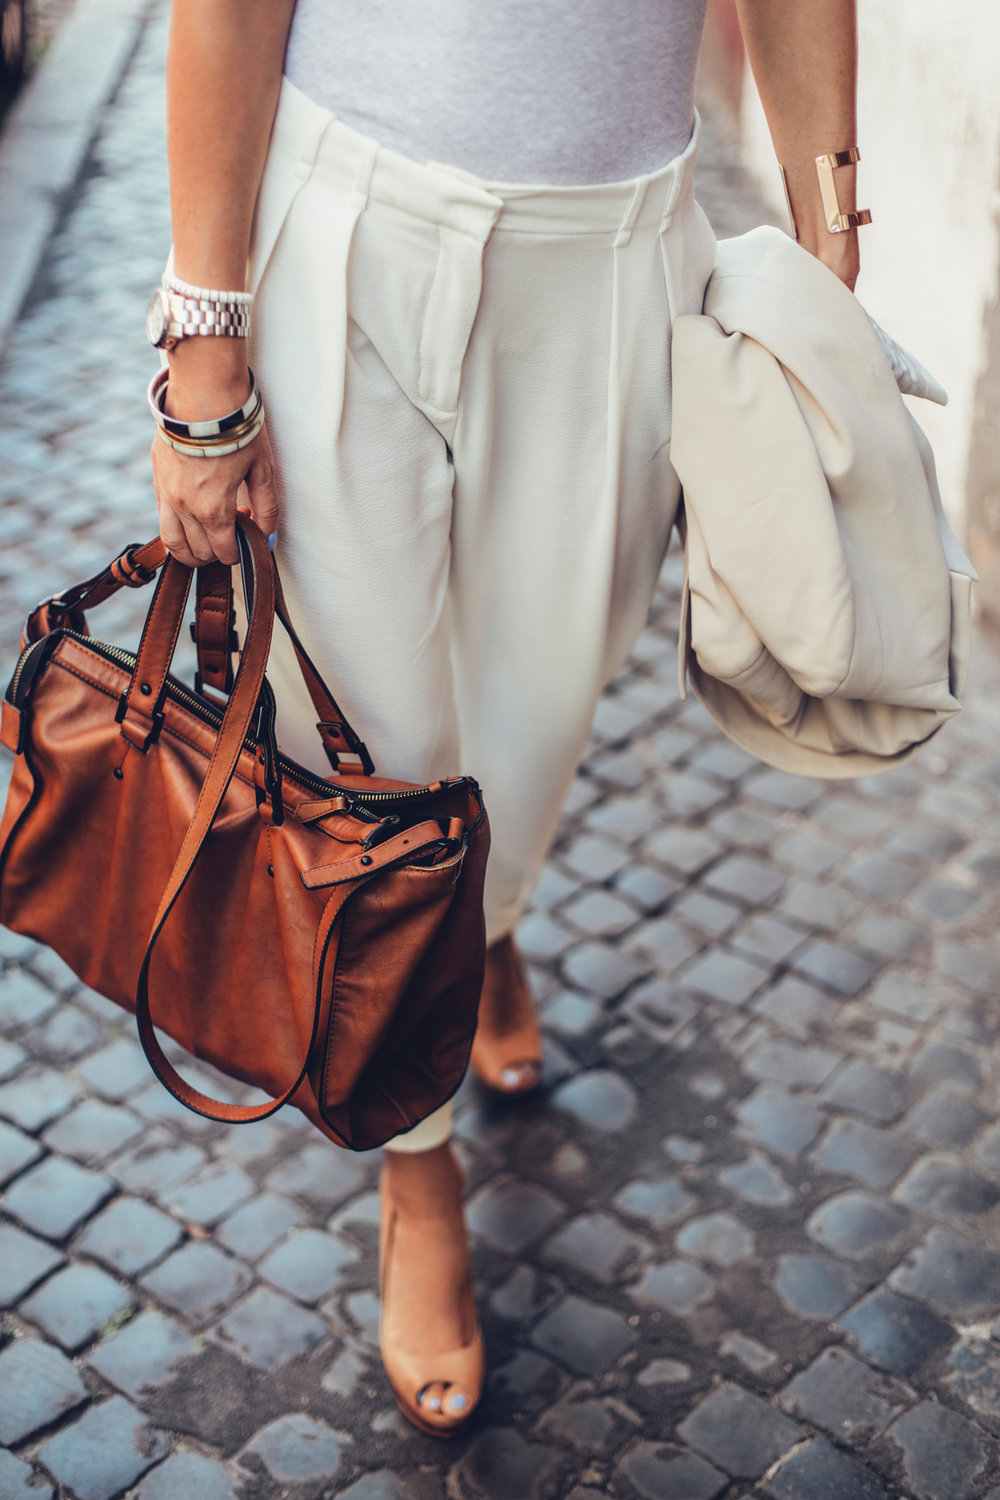 Woman Carrying a Brown Leather Handbag